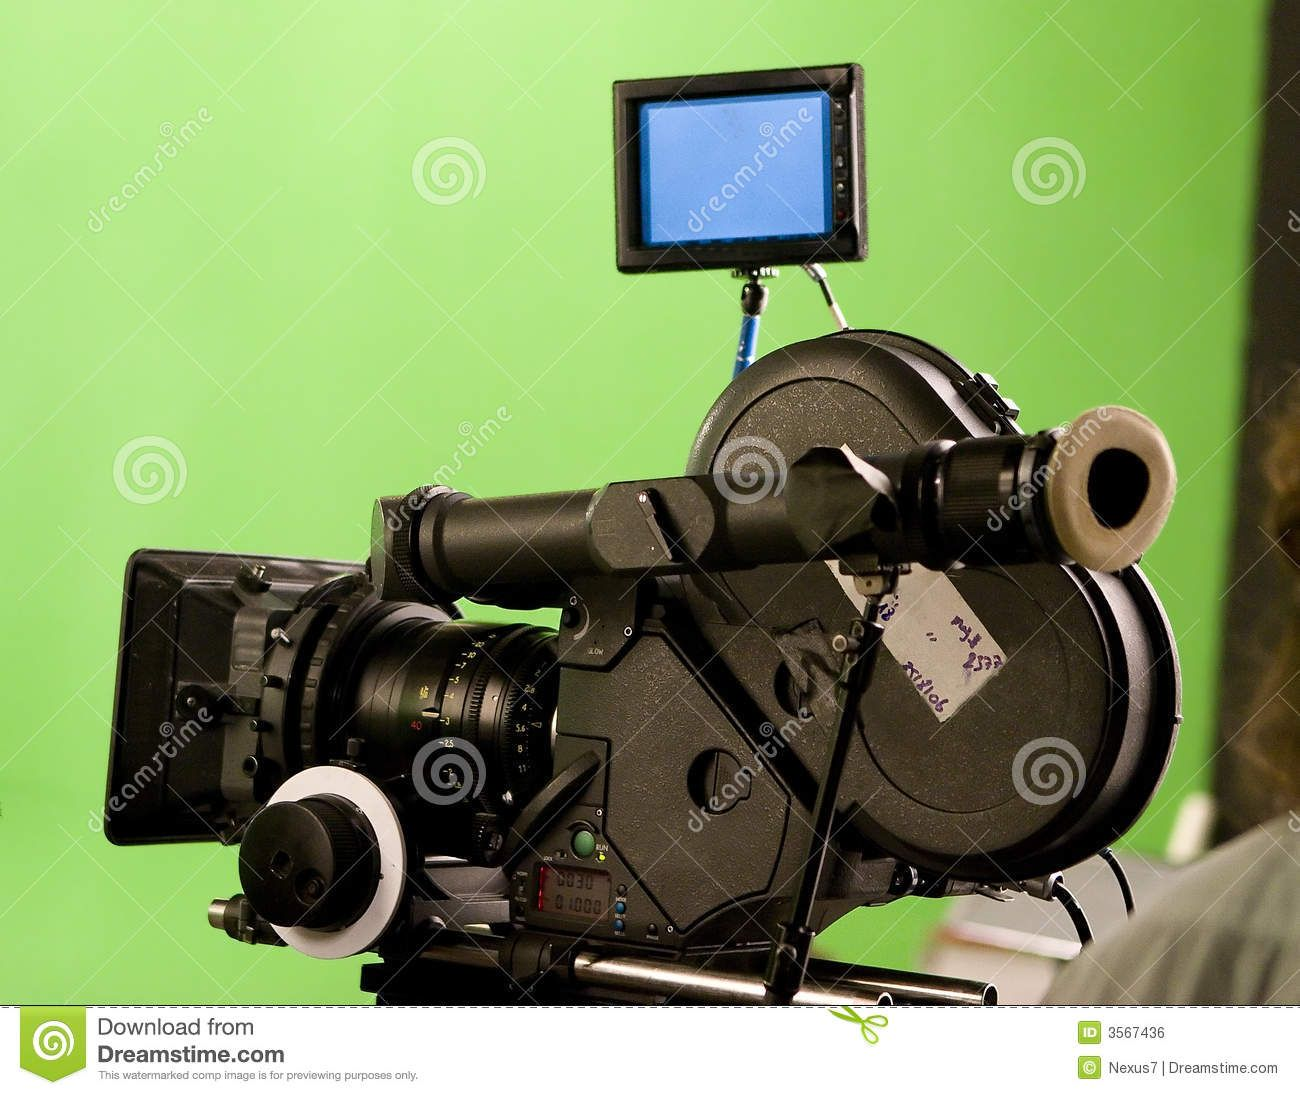 A Modern Film Camera With Green Screen In An Indoor Studio Large Image From